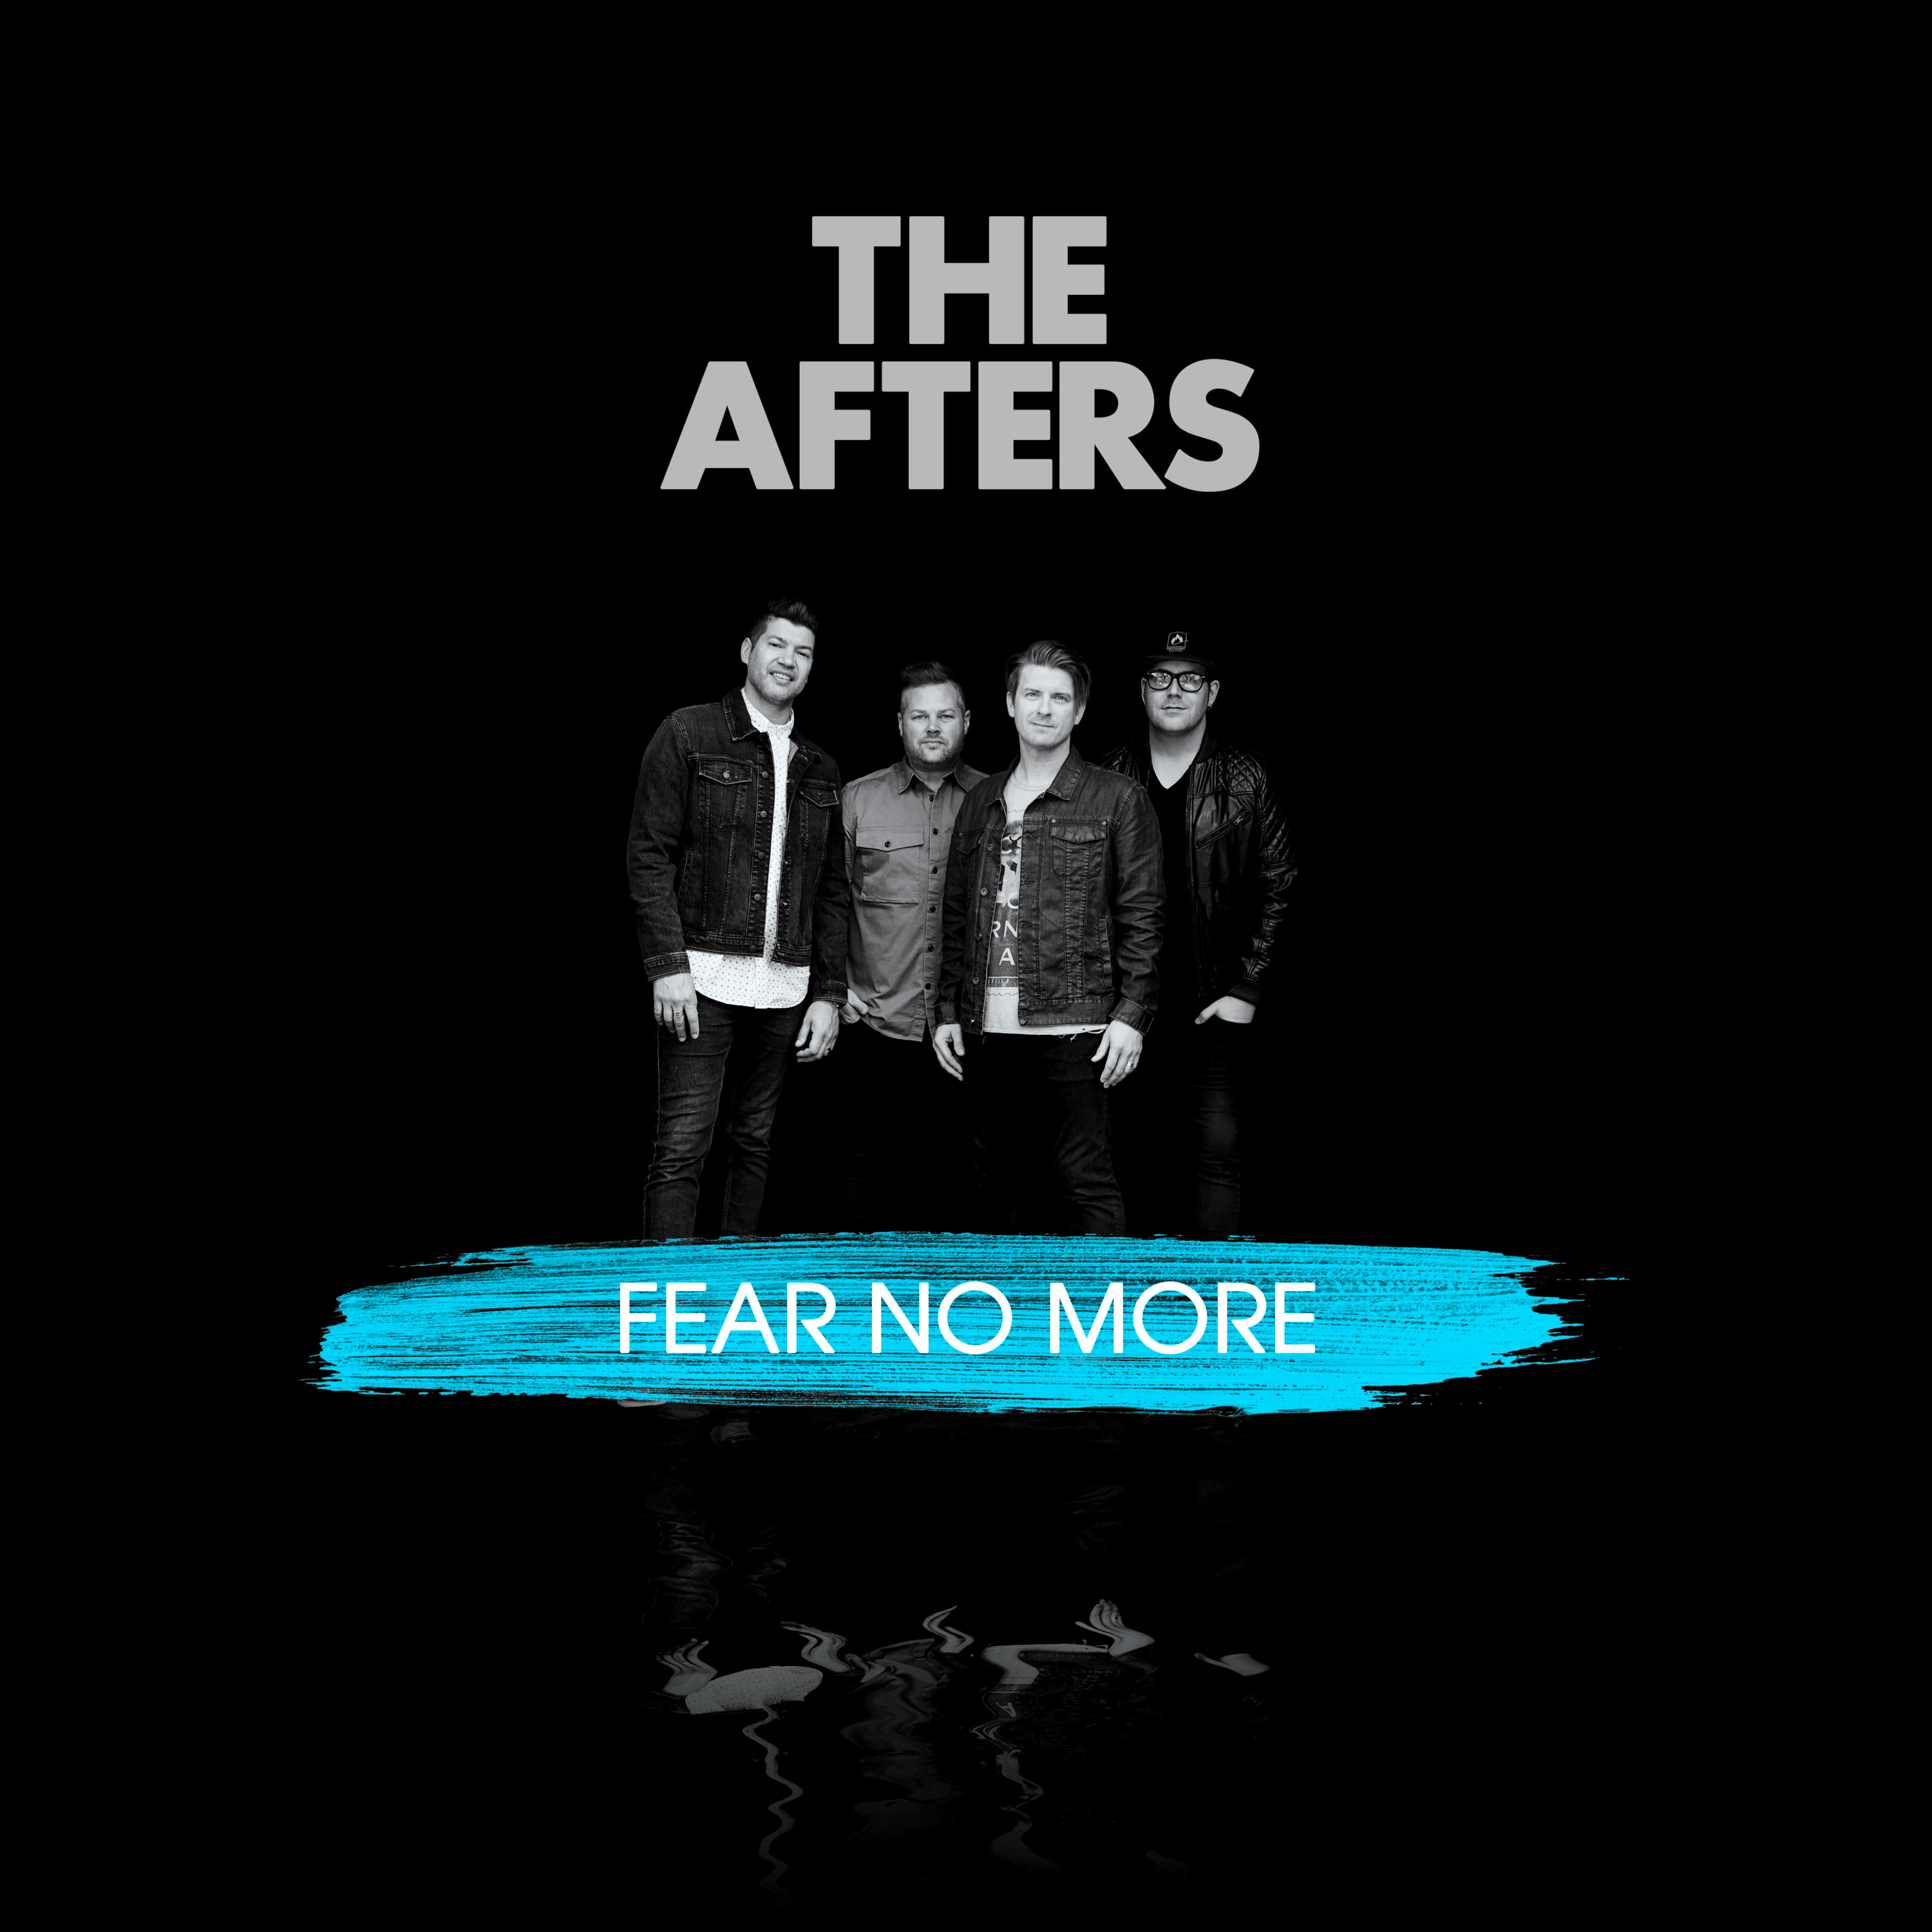 Josh Havens From The Afters Introduces Their New Album - Fear No More